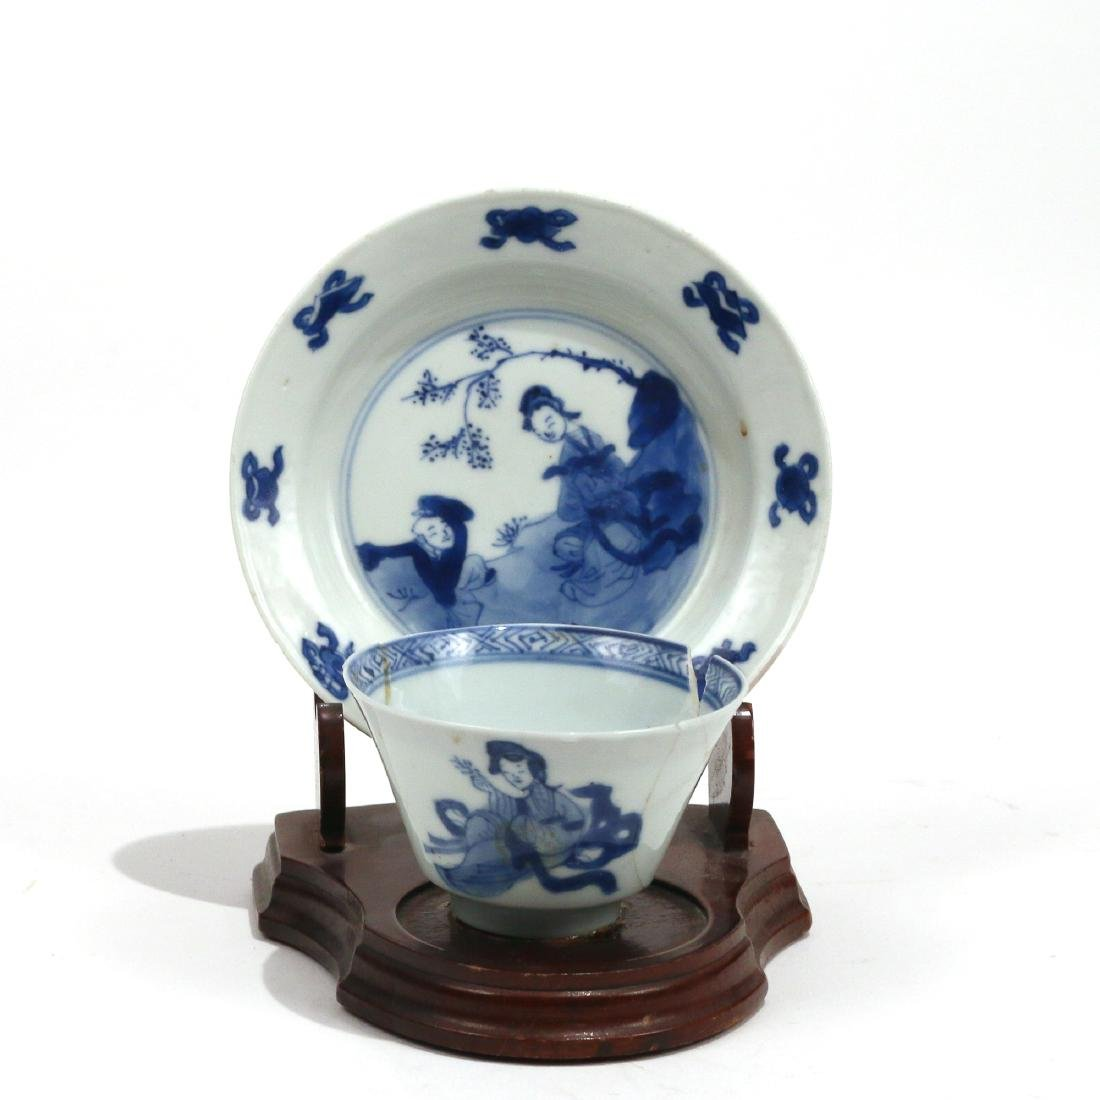 CHINESE BLUE & WHITE PORCELAIN CUP & SAUCER